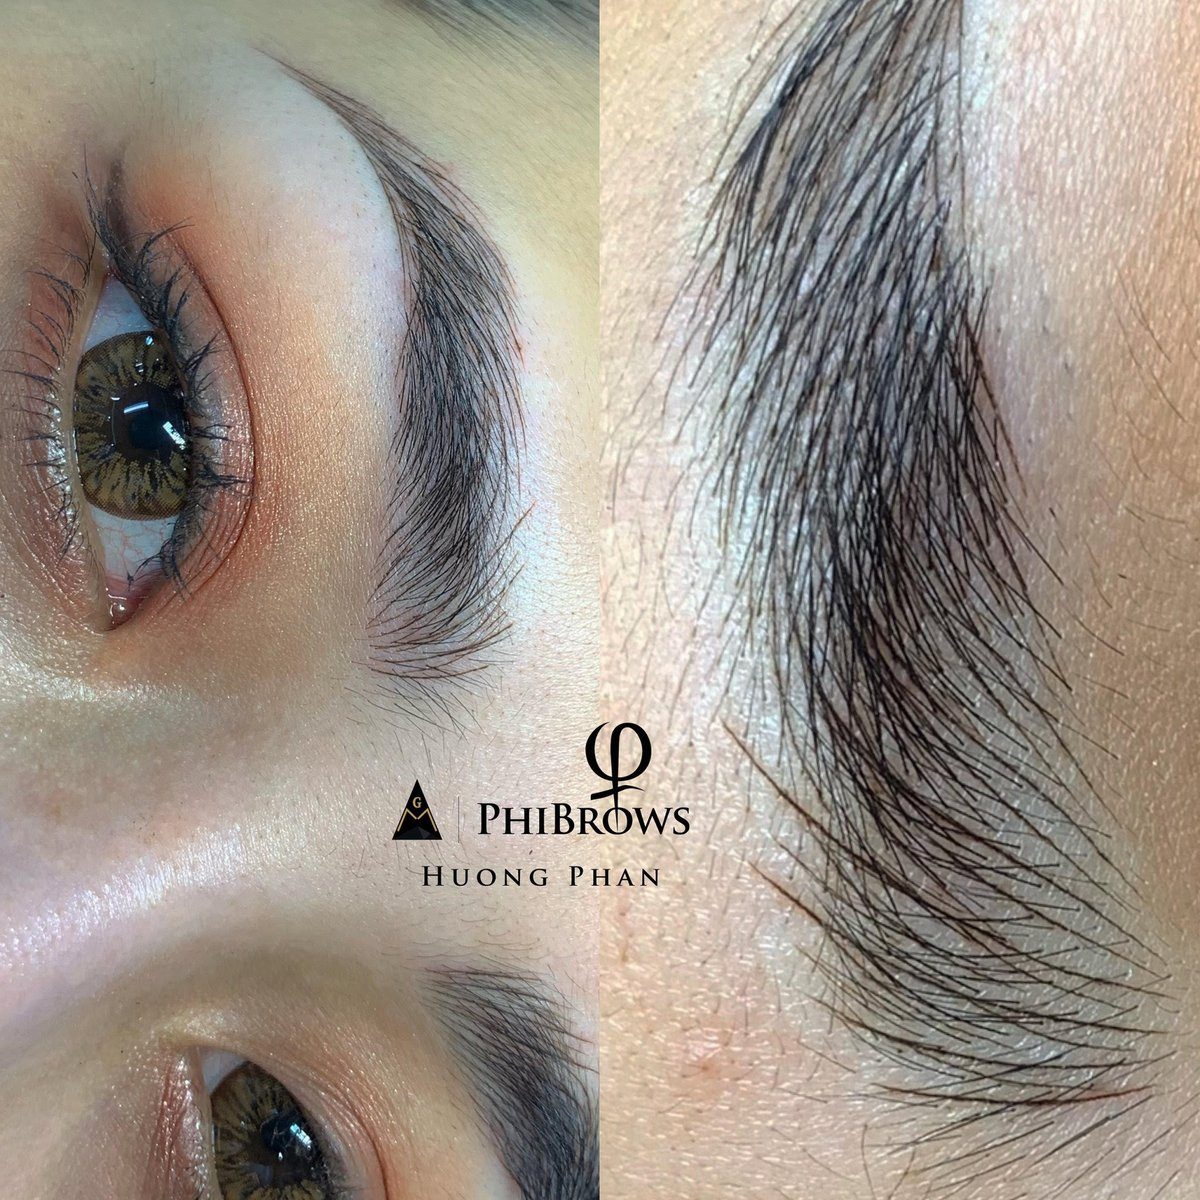 Learn how to become a PhiBrows artist in Orlando, FL. Feb 21-22. ⁠Contact a PhiBrows Master today! Call 602-419-1708⁠ or https://soo.nr/FkbD  ⁠ #phibrows #phibrowsartist #microblading #microbladingartist #phiacademy #phibrowstraining #phibrowsmasterpic.twitter.com/DTUBAfr5F7